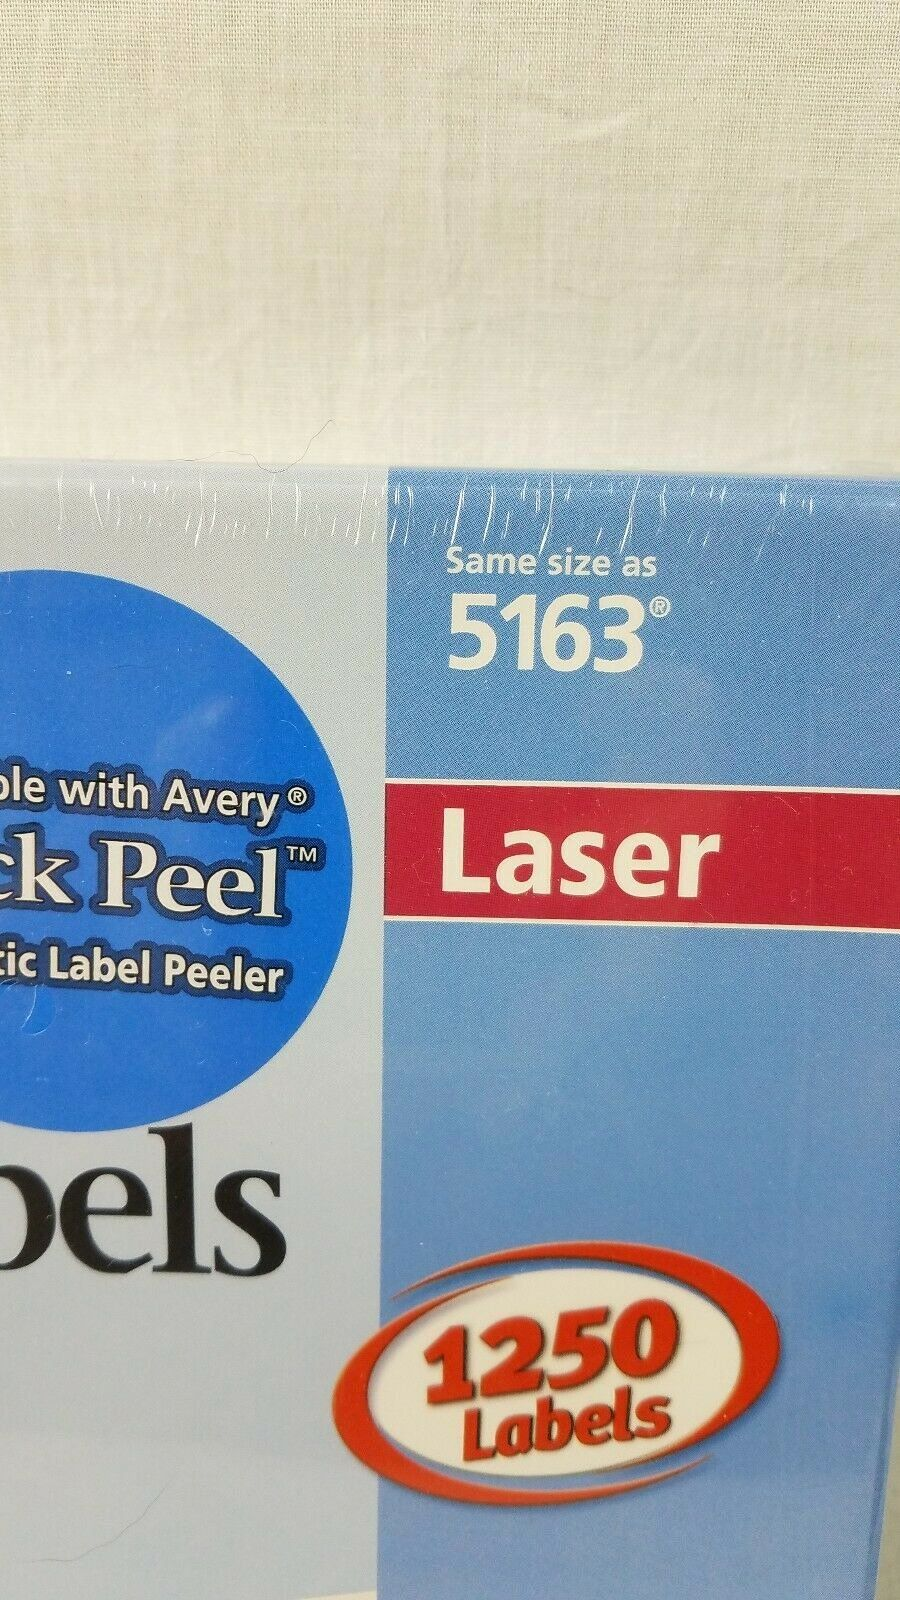 Avery 2x4 Labels Template Best Of Avery 1250 White Labels 5163 2x4 125 Sheets Laser Printer True Block In 2020 Label Templates Labels Dvd Label Template